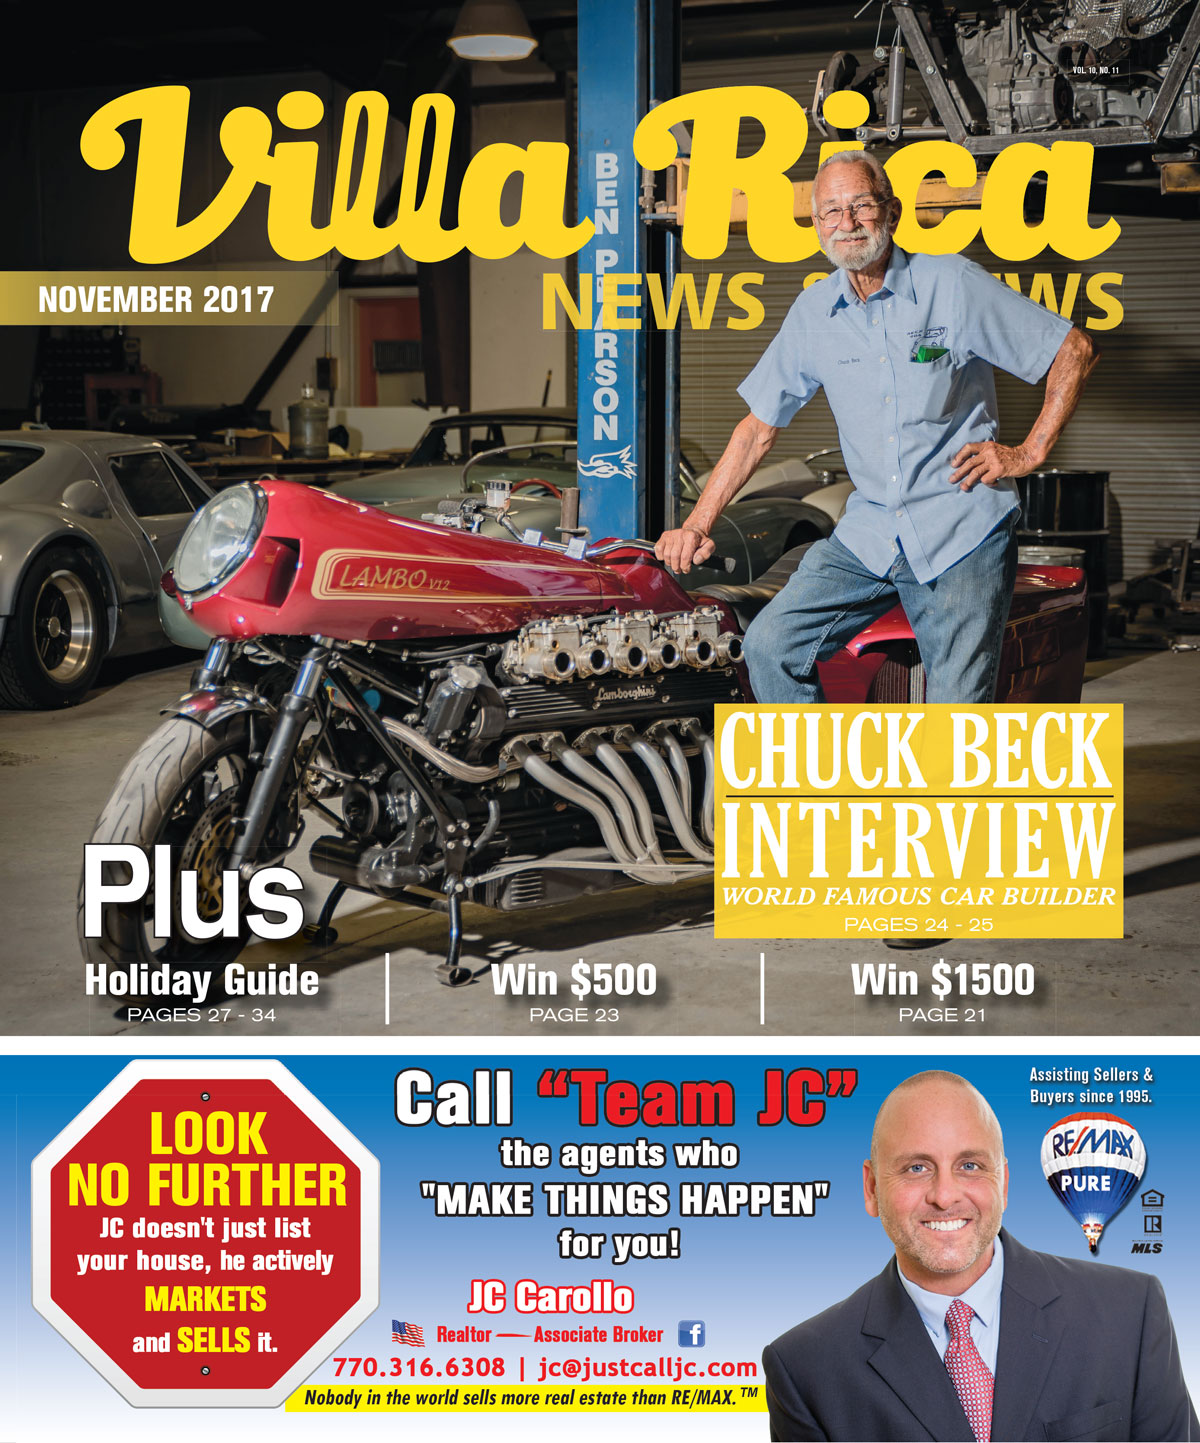 November 2017 issue of Villa Rica News & Views